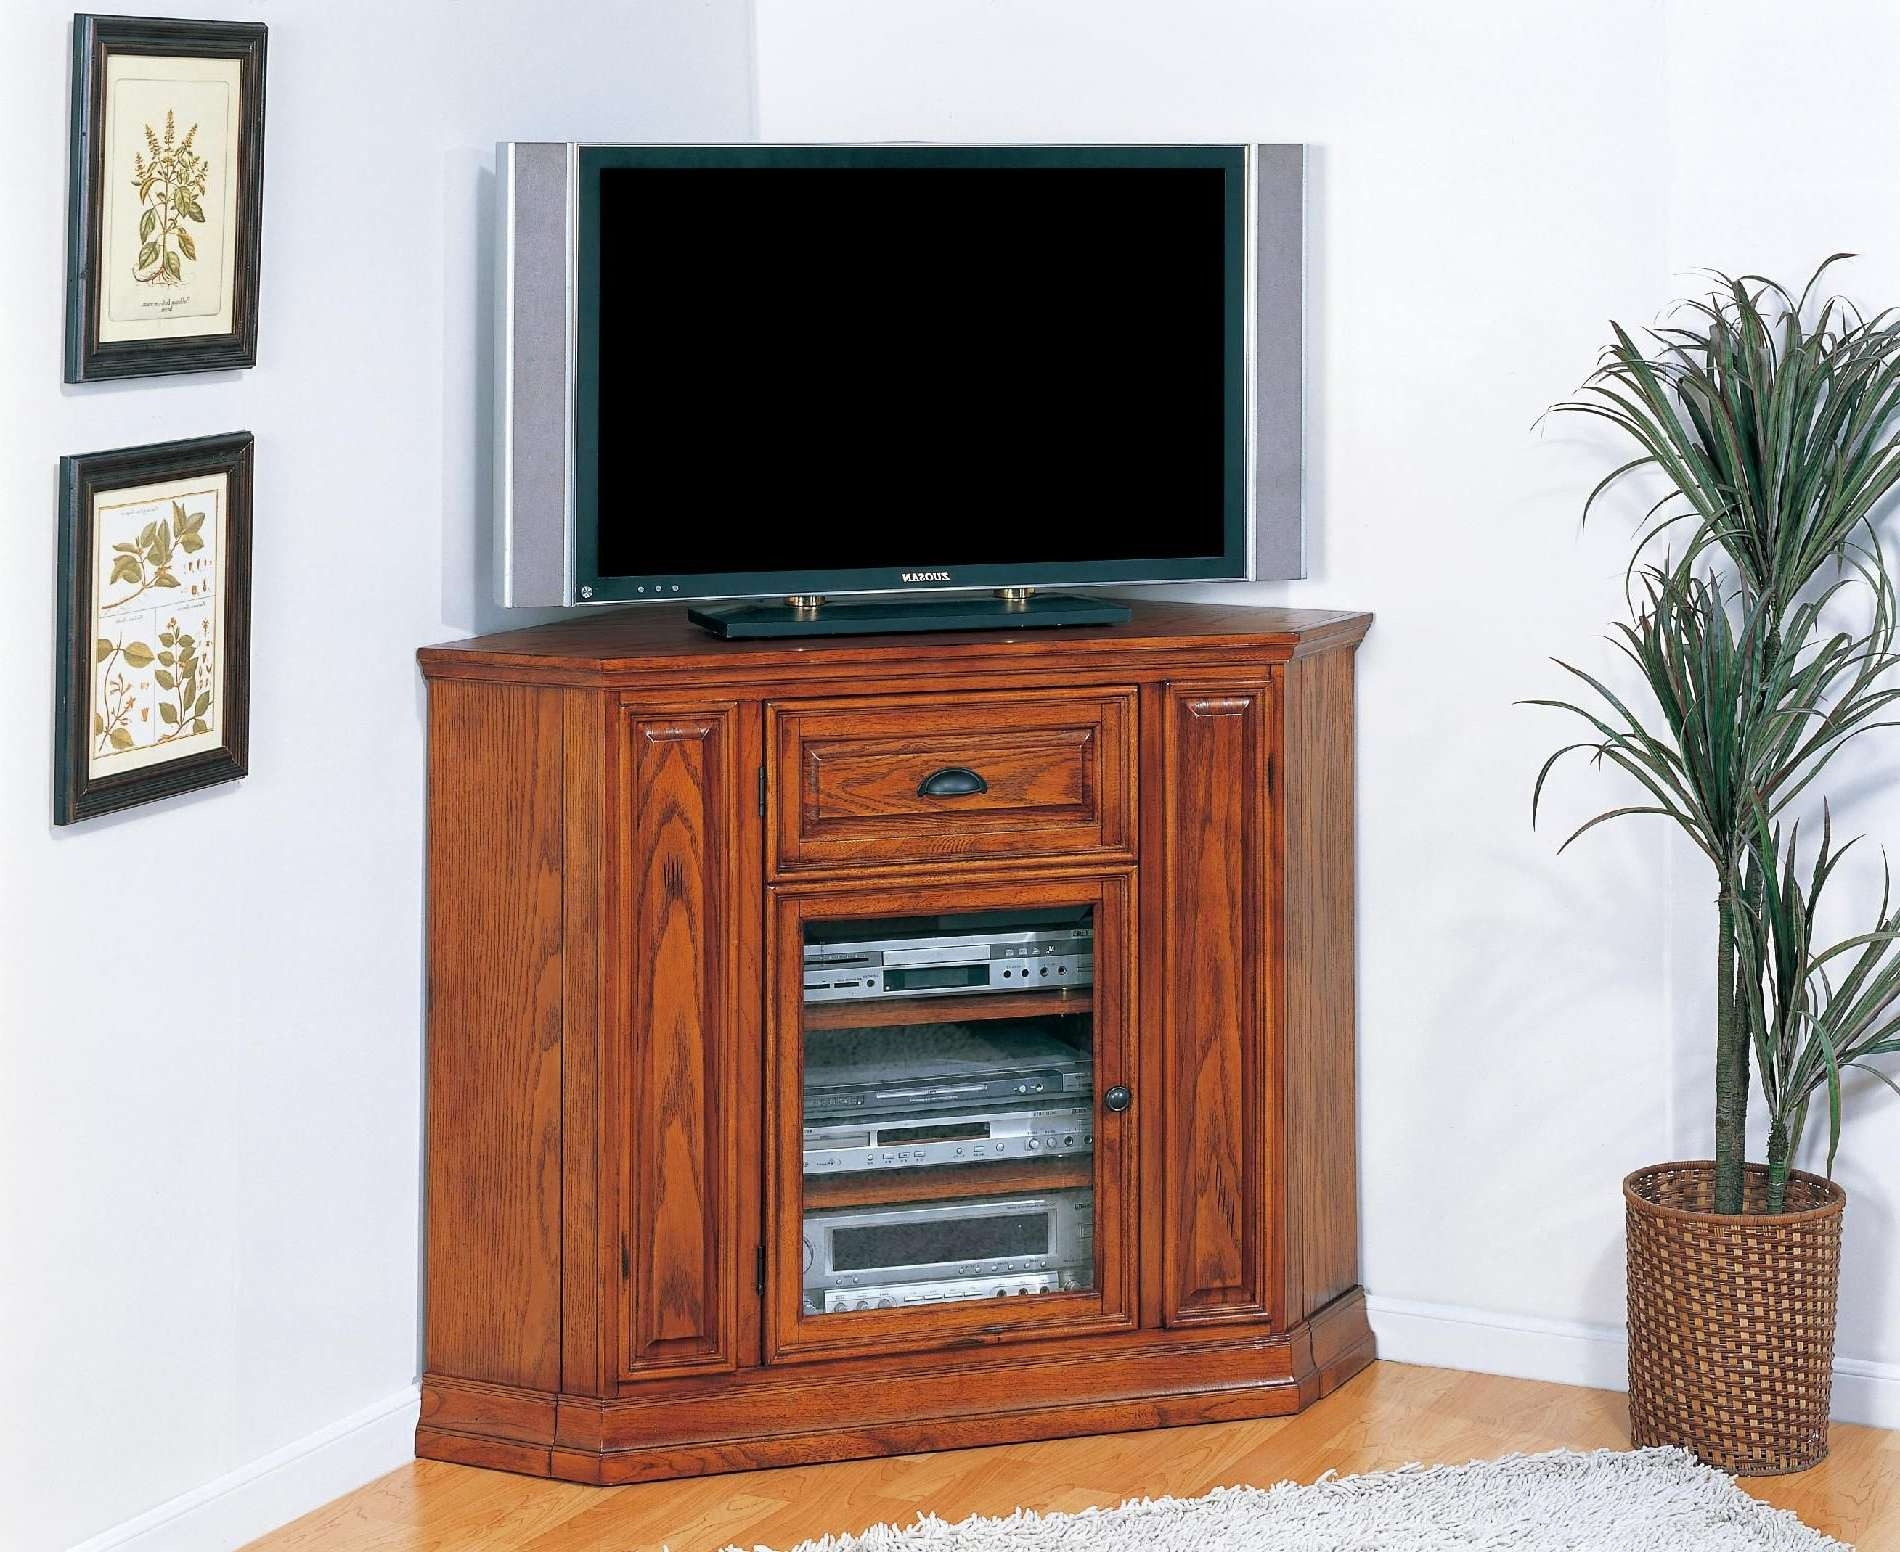 Tall Corner Tv Cabinets For Flat Screens • Corner Cabinets Intended For Corner Tv Cabinets For Flat Screens With Doors (View 17 of 20)